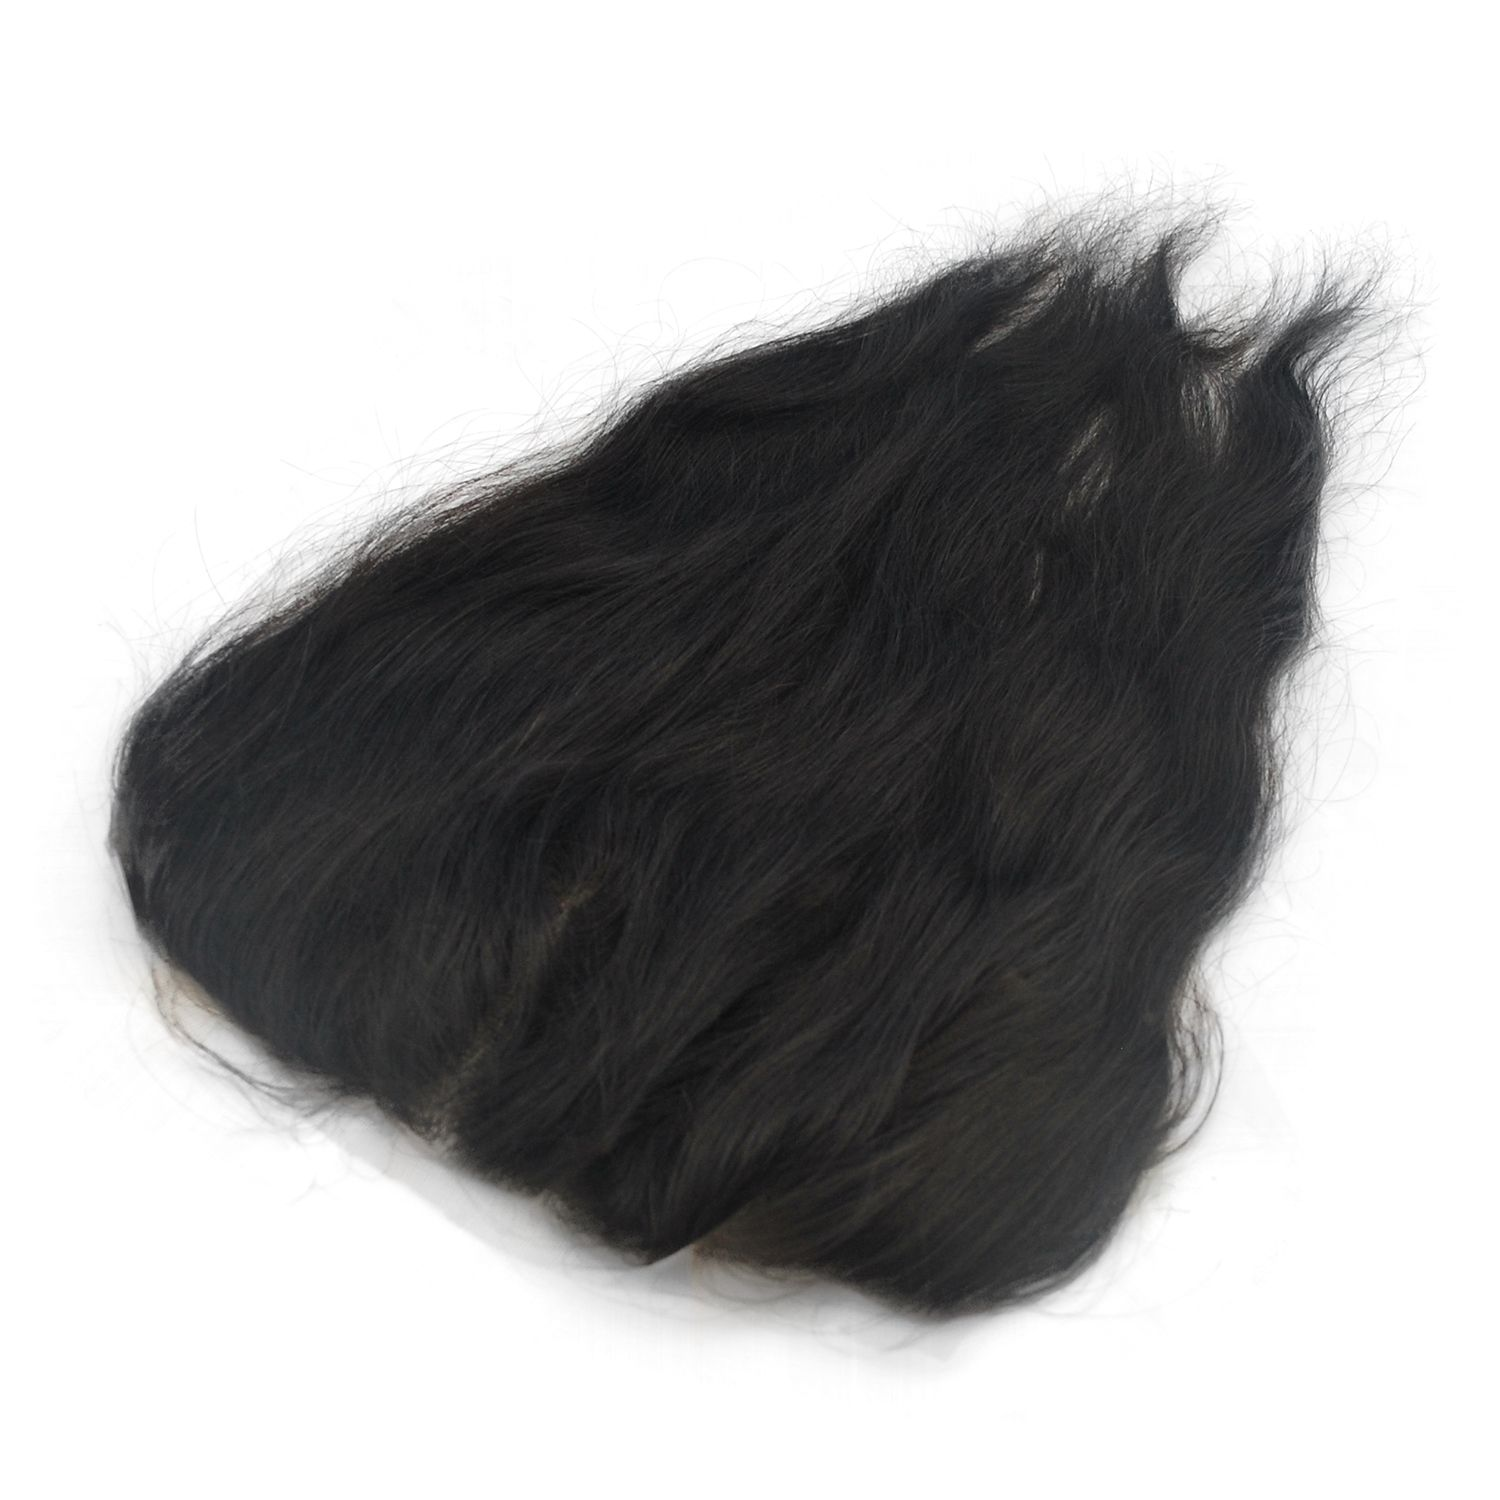 Straight perm bleached hair -  Hair Length Inch Hair Texture Natural Straight Hair Type Human Hair Hair Direction Free Style Without Chemical Treatment Can Be Permed Bleached